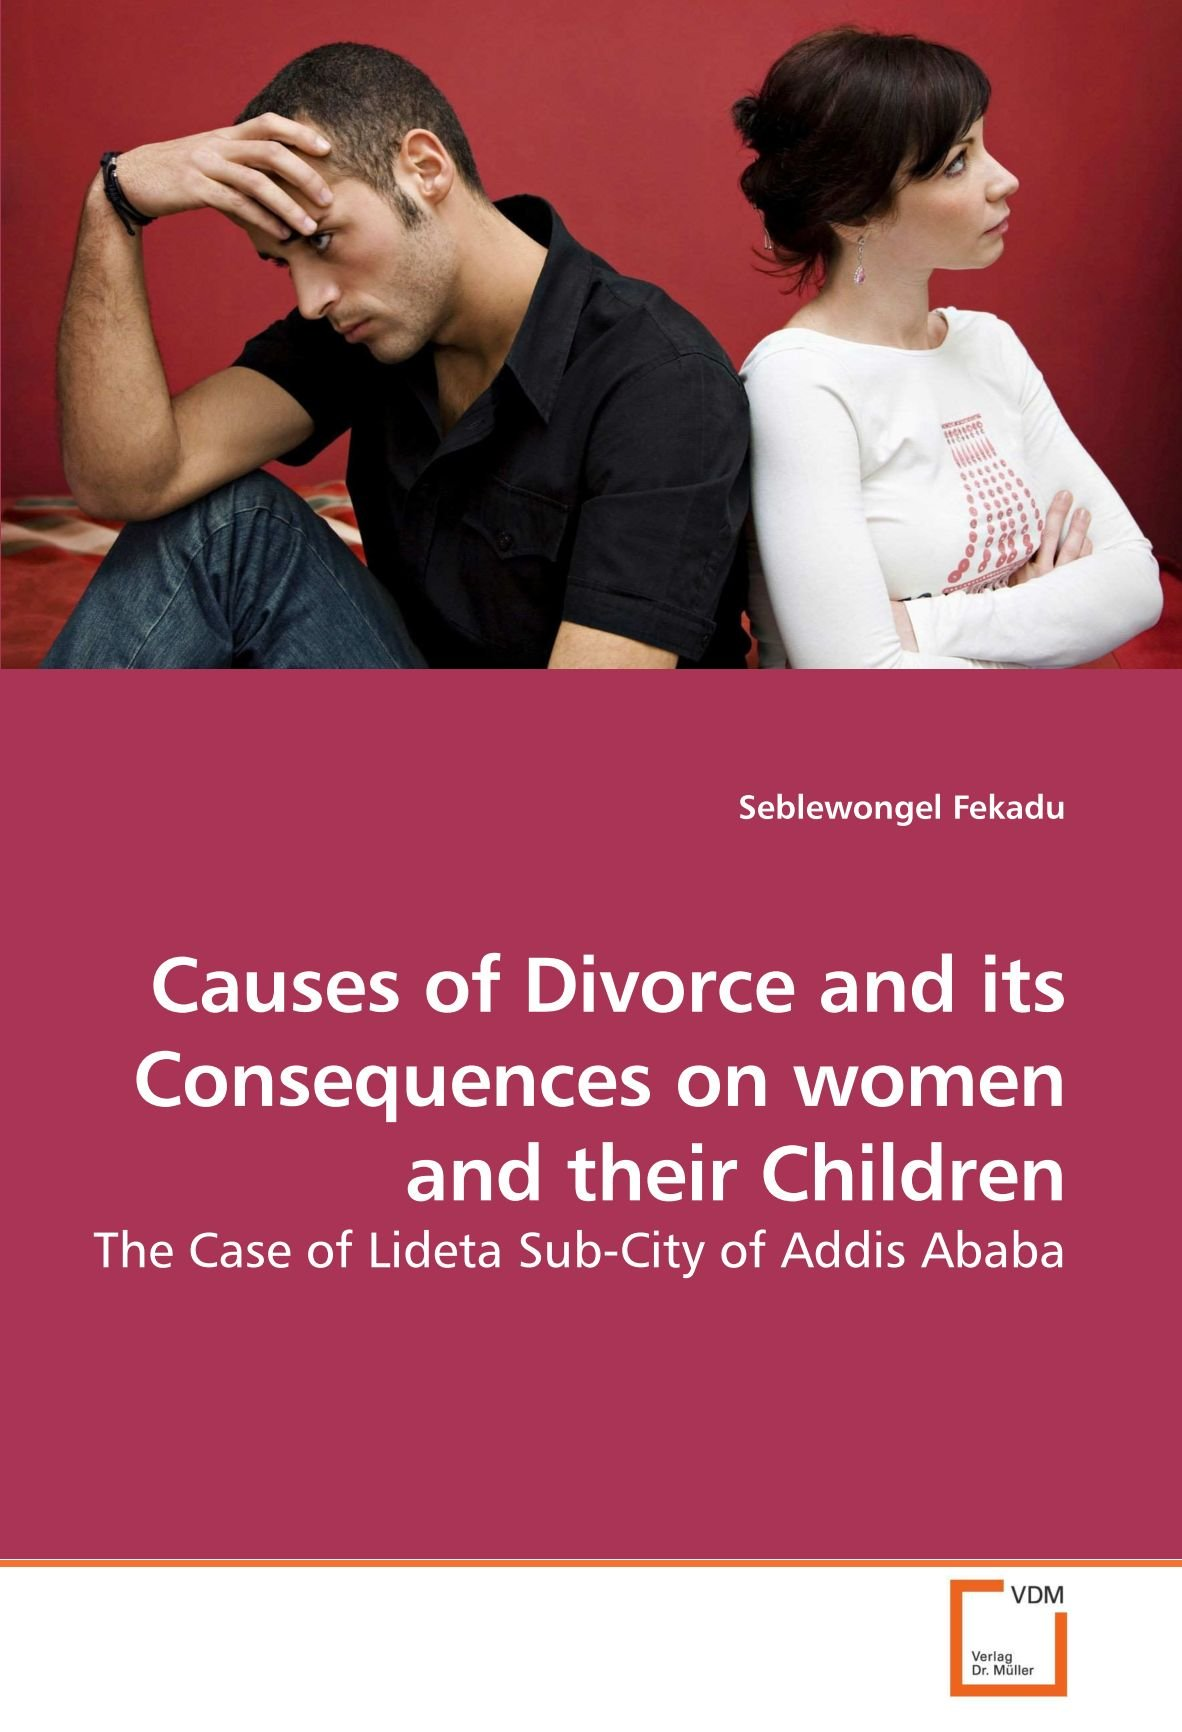 Download Causes of Divorce and its Consequences on women and their Children: The Case of Lideta Sub-City of Addis Ababa PDF